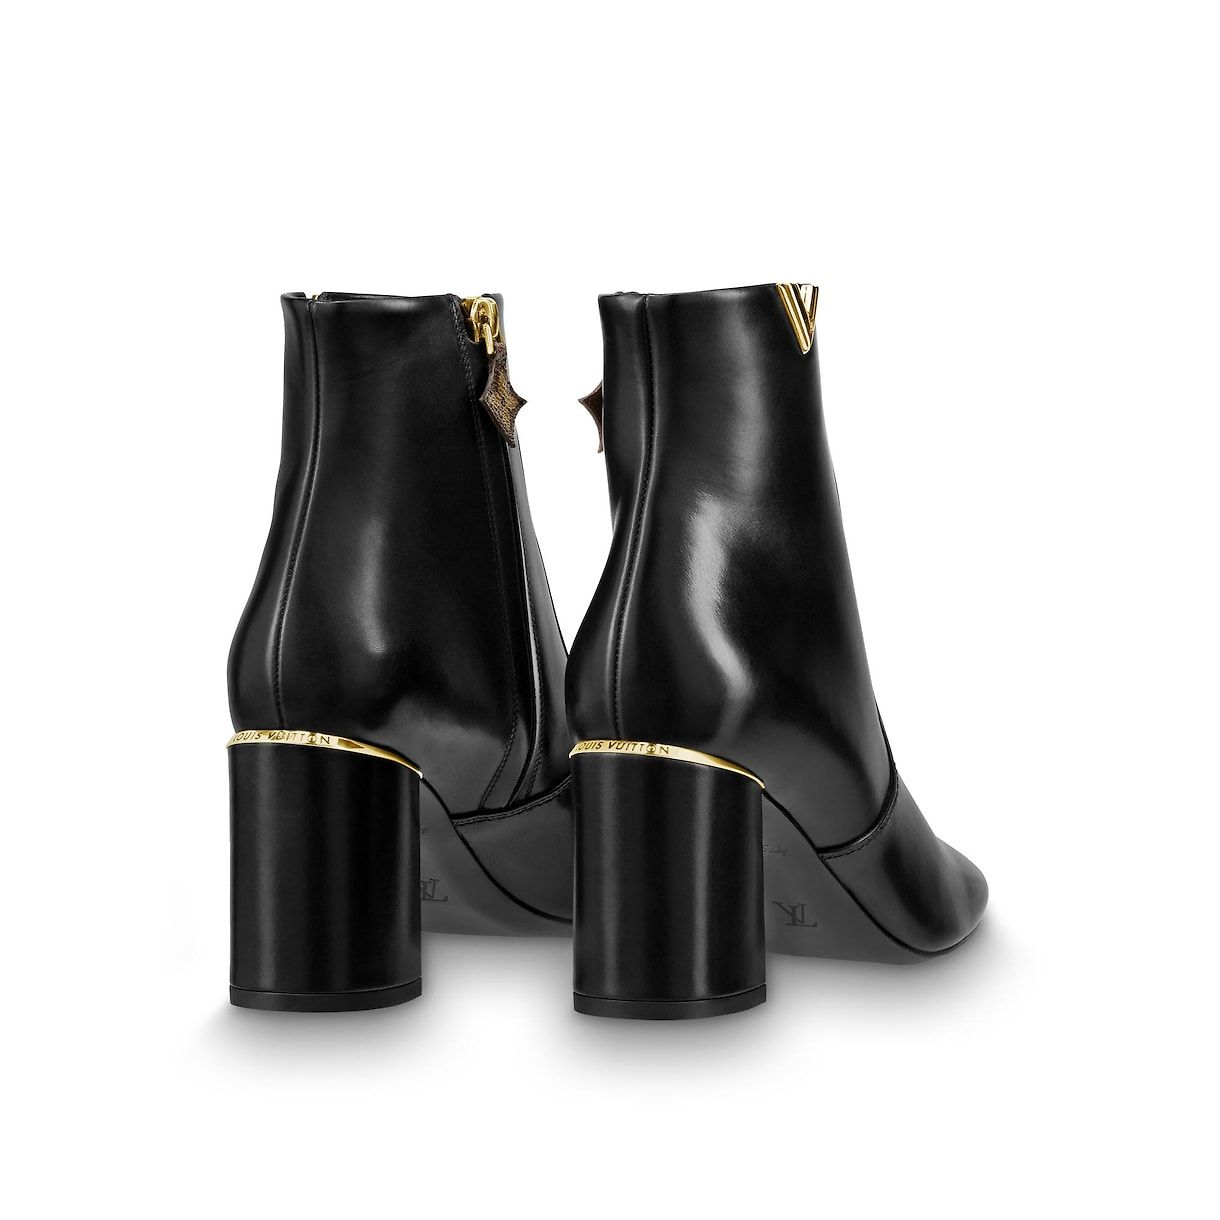 View 3 - Skyline Ankle Boot in Women's